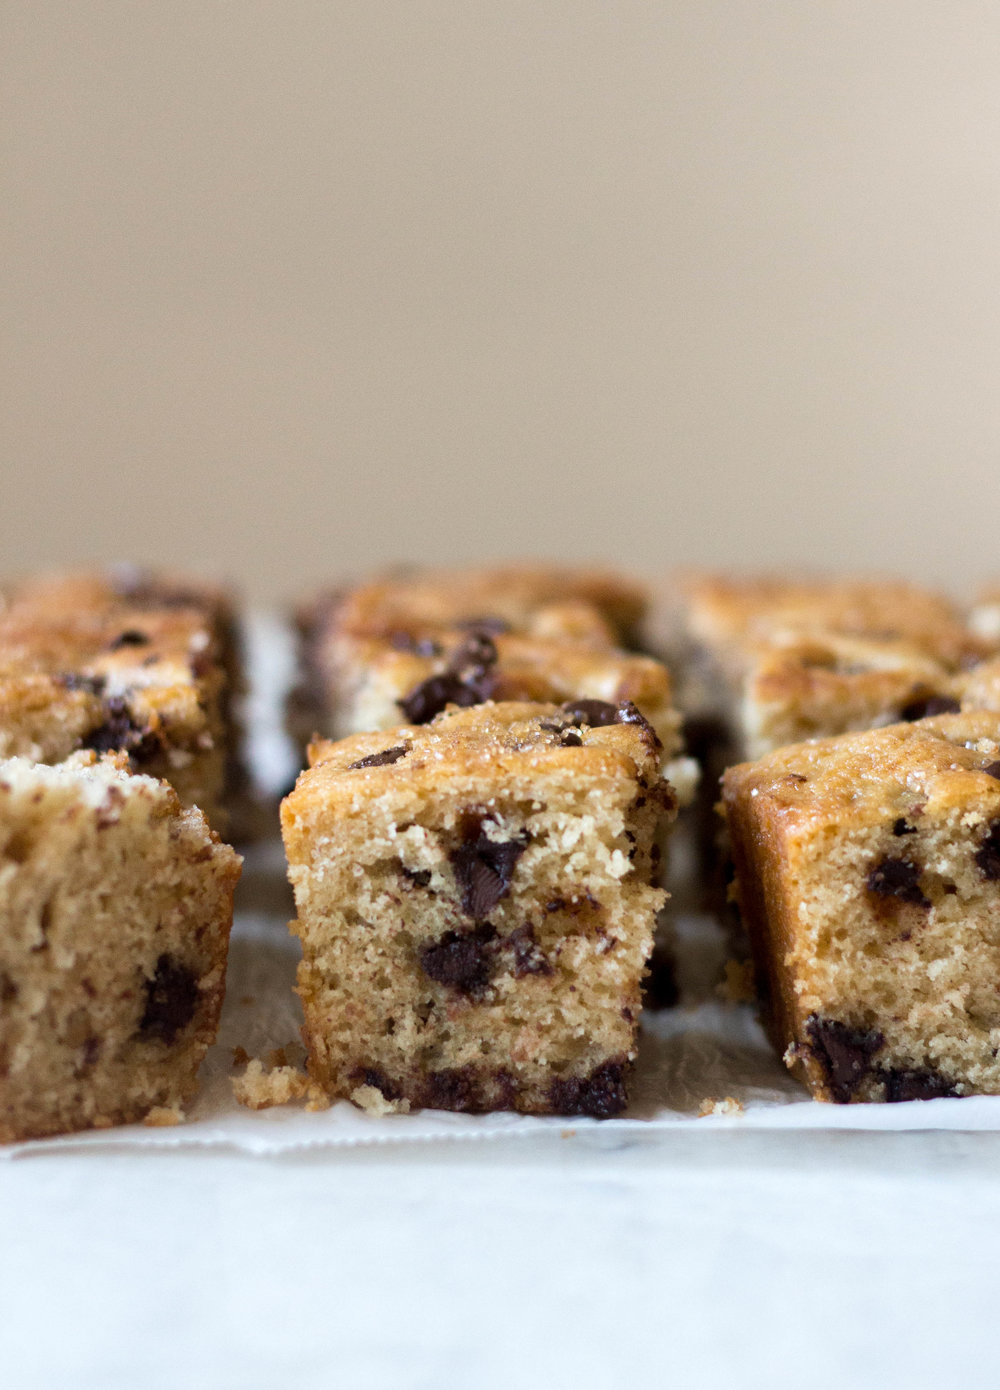 chocolate chip snack cake (7 of 11).jpg